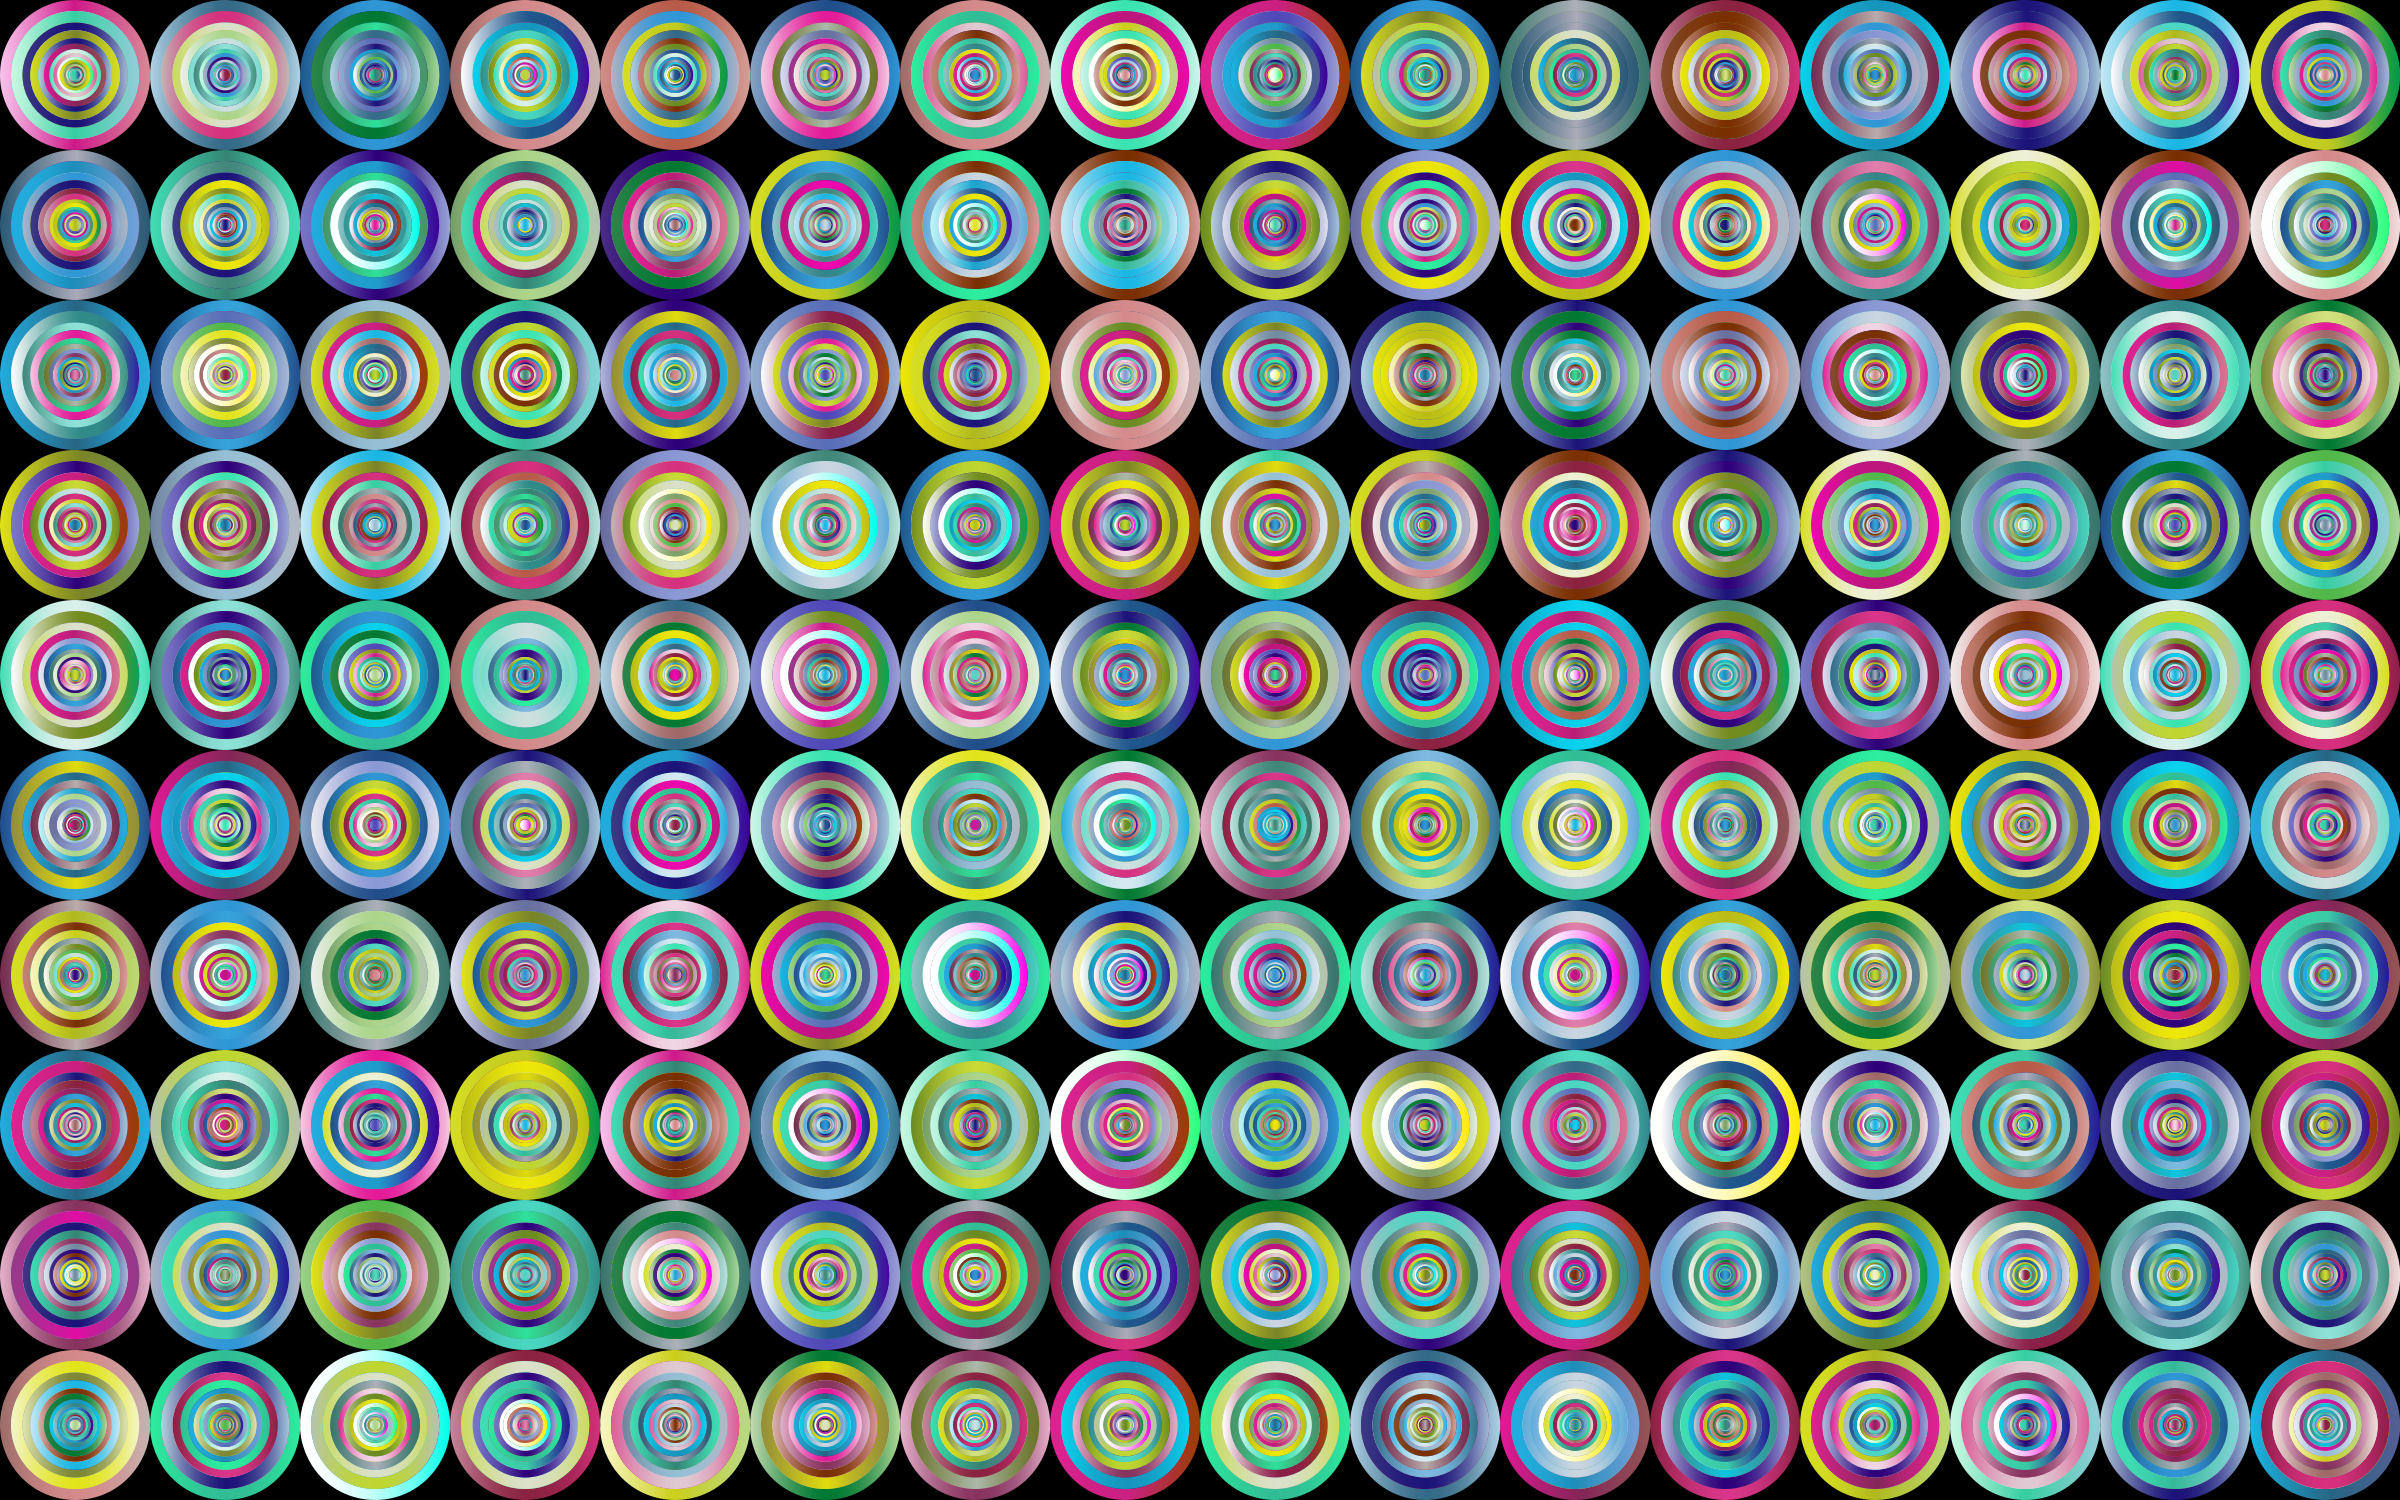 Prismatic Groovy Concentric Background 3 by GDJ